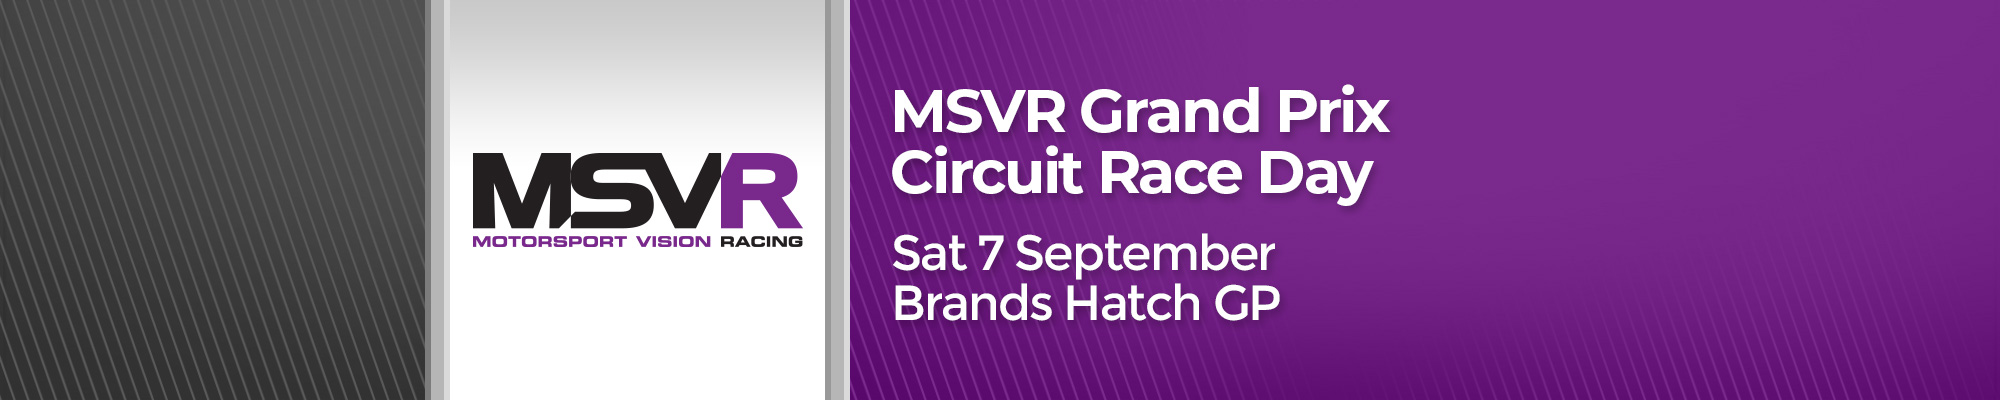 MSVR Grand Prix Circuit Race Day